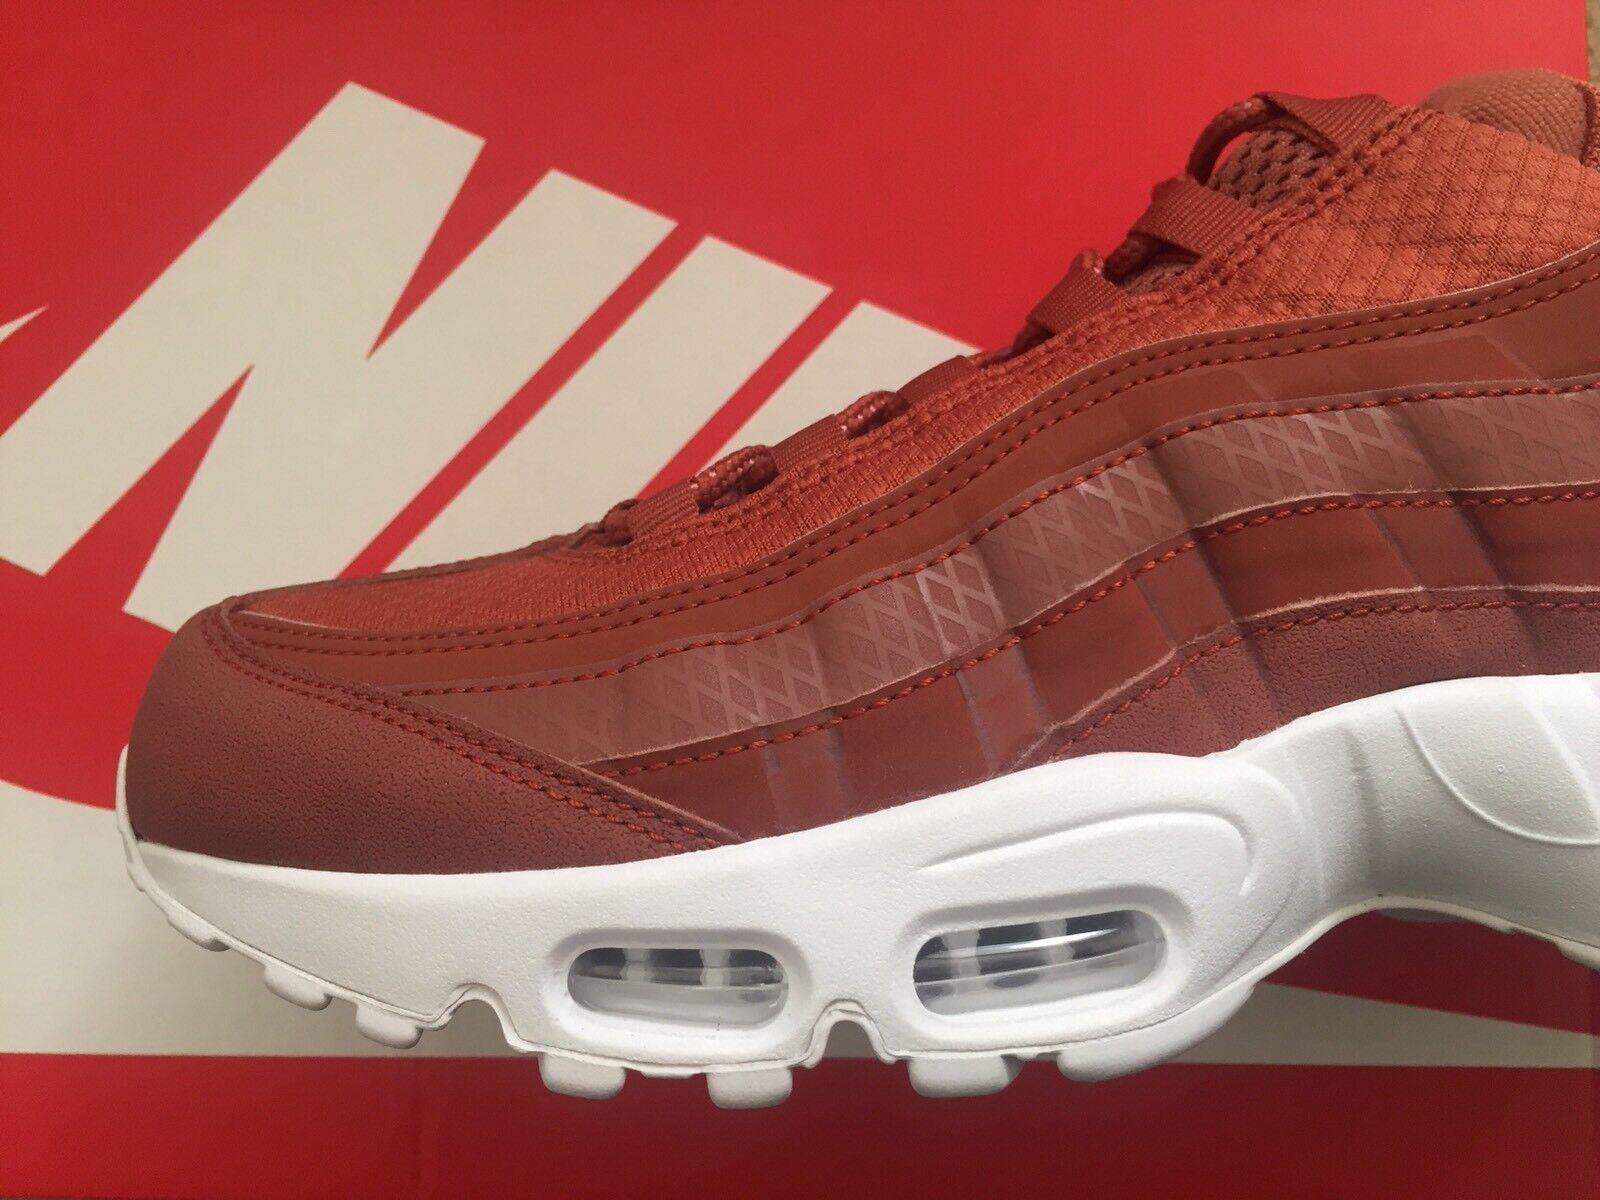 NEW homme Nike Air Max 95 Premium SE Trainers Sneakers Limited Edition Retro